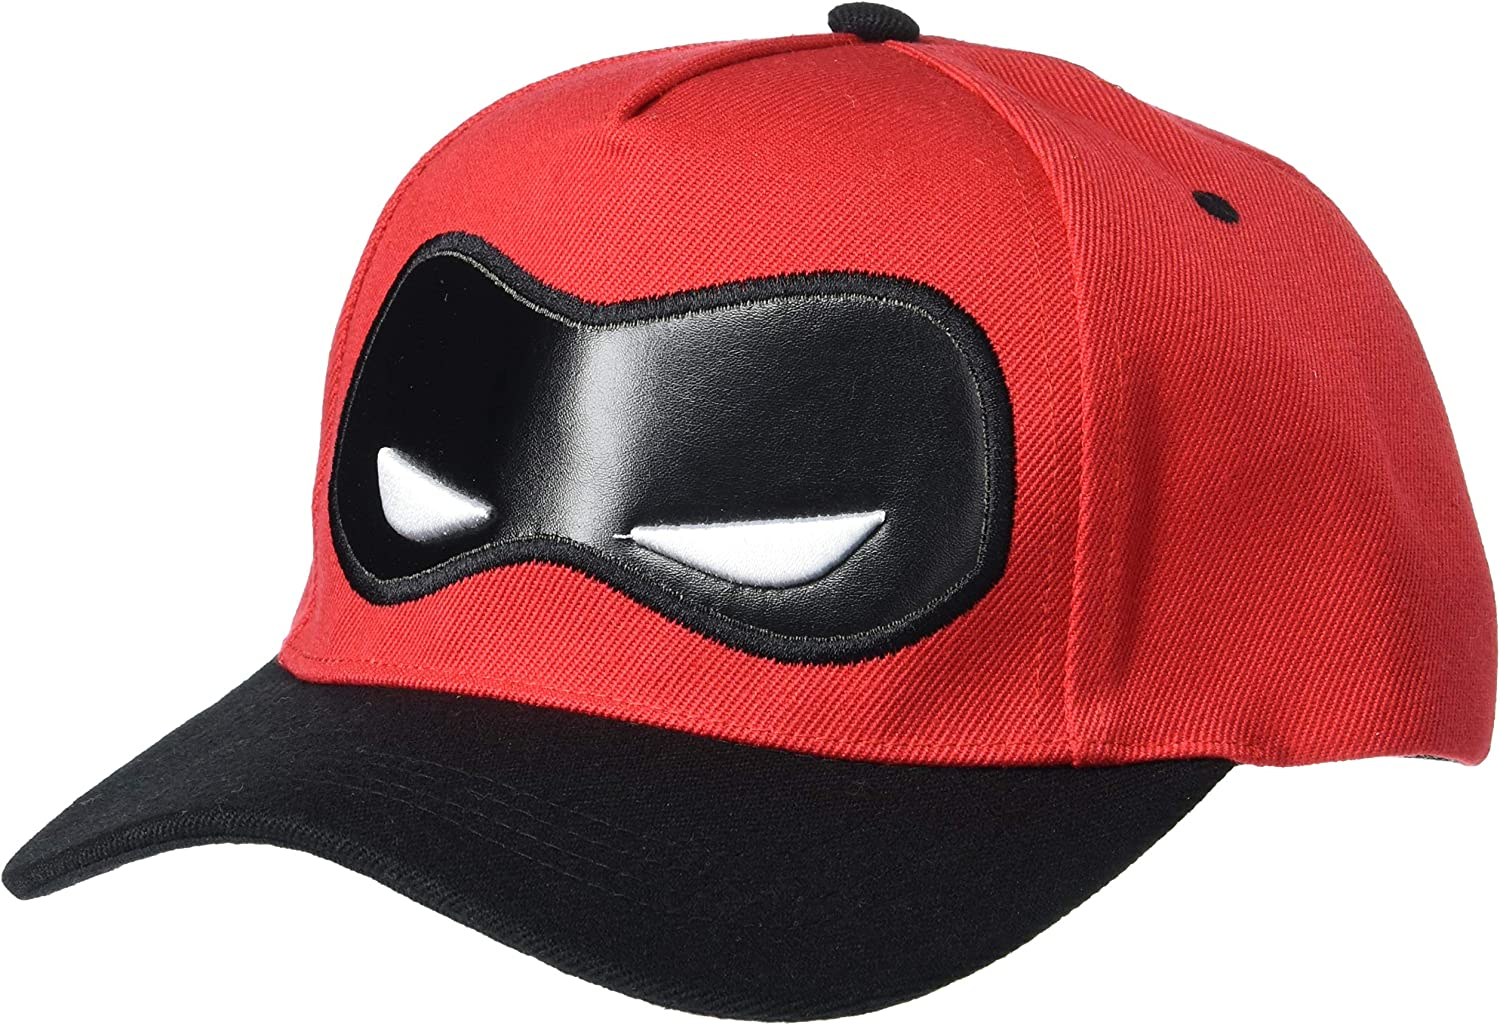 Concept One Disney's Pixar The Incredibles 2 Dash Mask Embroidered Adjustable Hook and Loop Baseball Hat with Curved Brim, Red, One Size